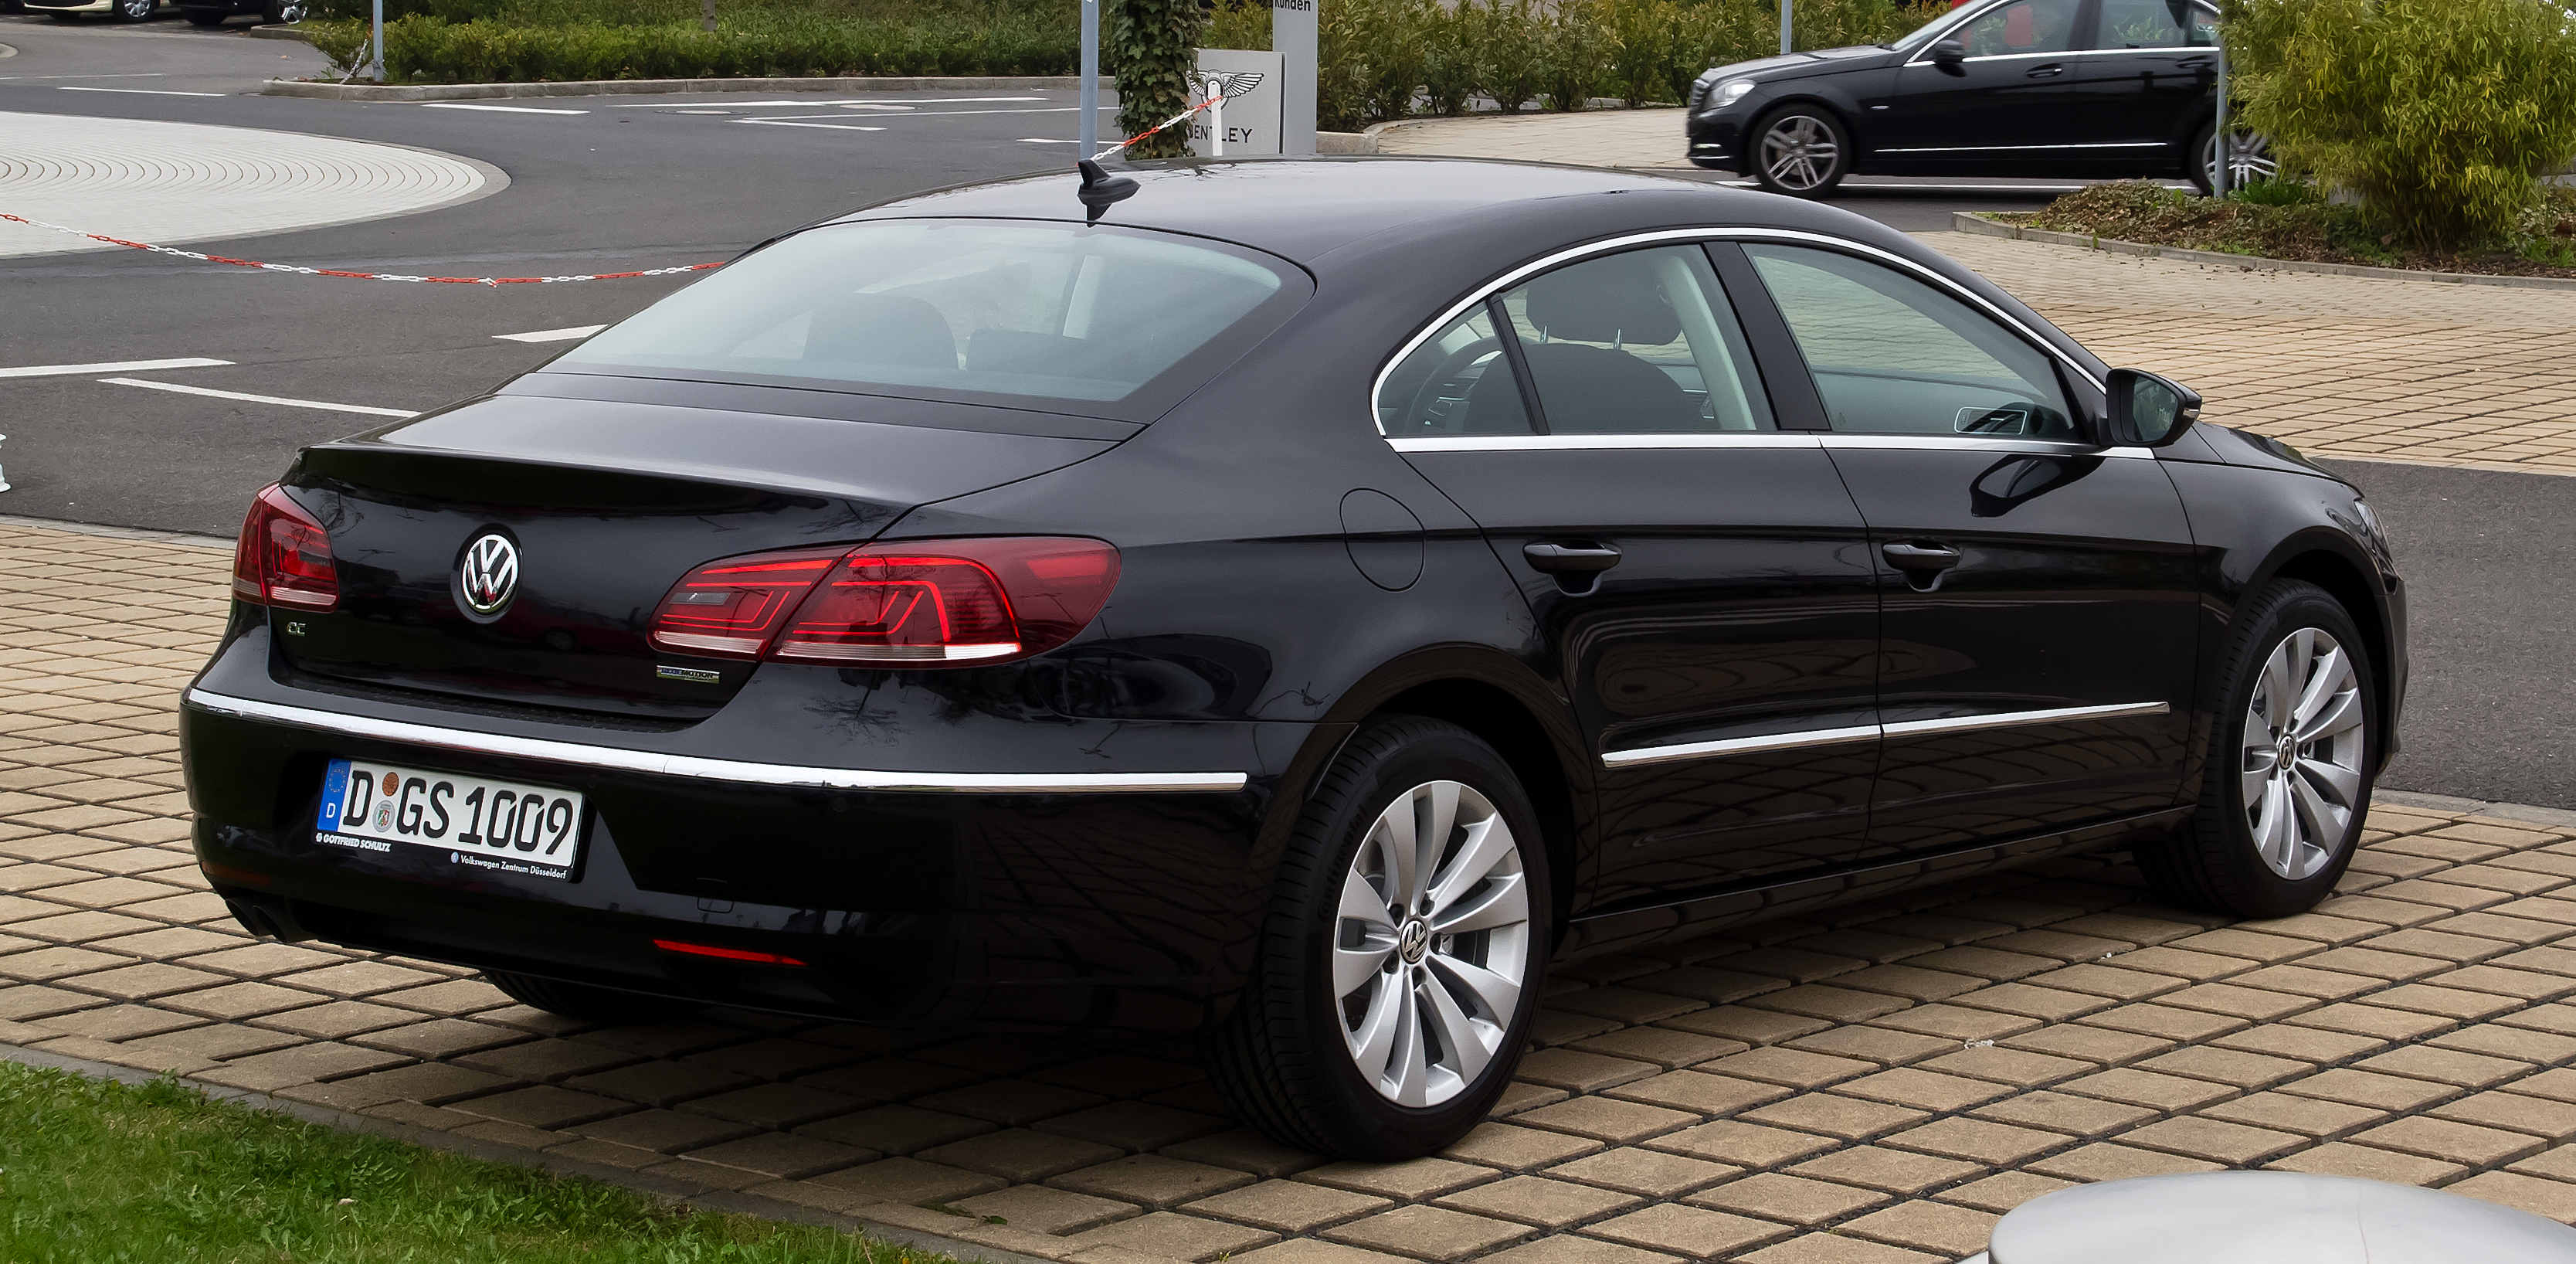 File VW Passat CC rear 20090608 as well Watch together with File VW Scirocco III 1 4 TSI DSG Team Deep Black further File VW Jetta VI 1 2 TSI  fortline Platinumgrey Heck in addition Chevrolet Omega Cd 3 8 V6 2002. on 2012 volkswagen cc navigation